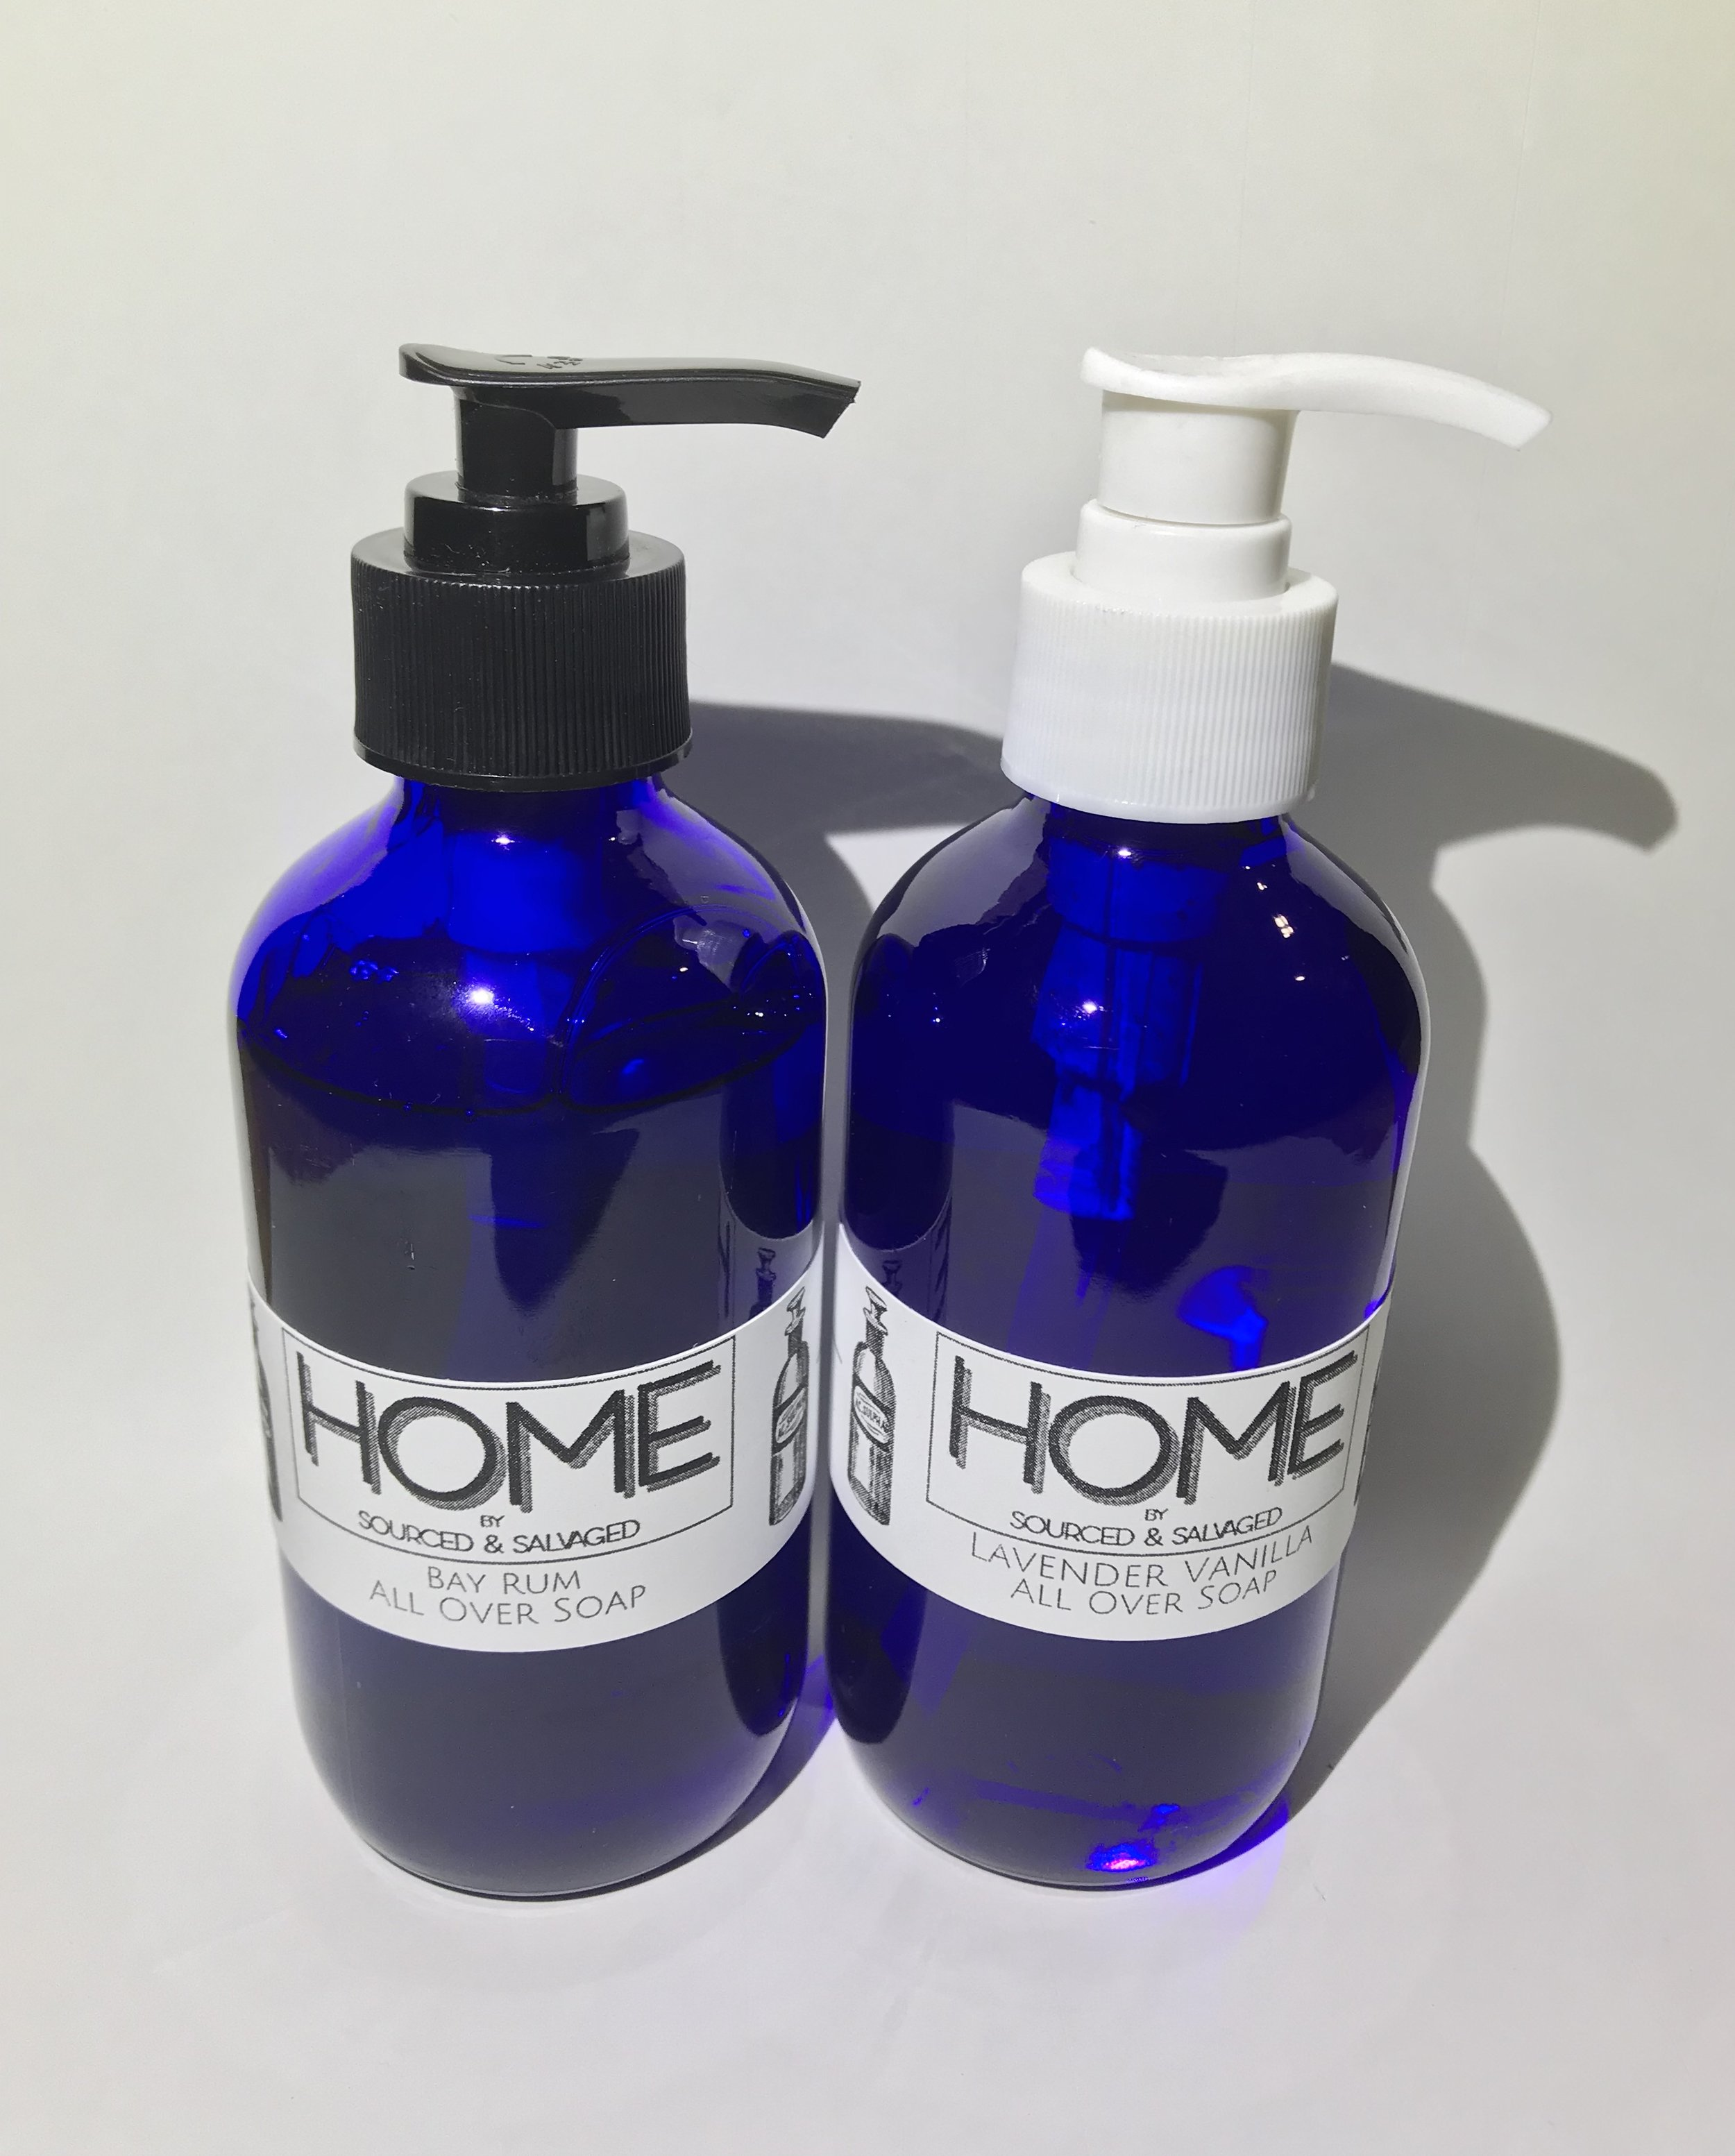 All Over Soap - $12.50